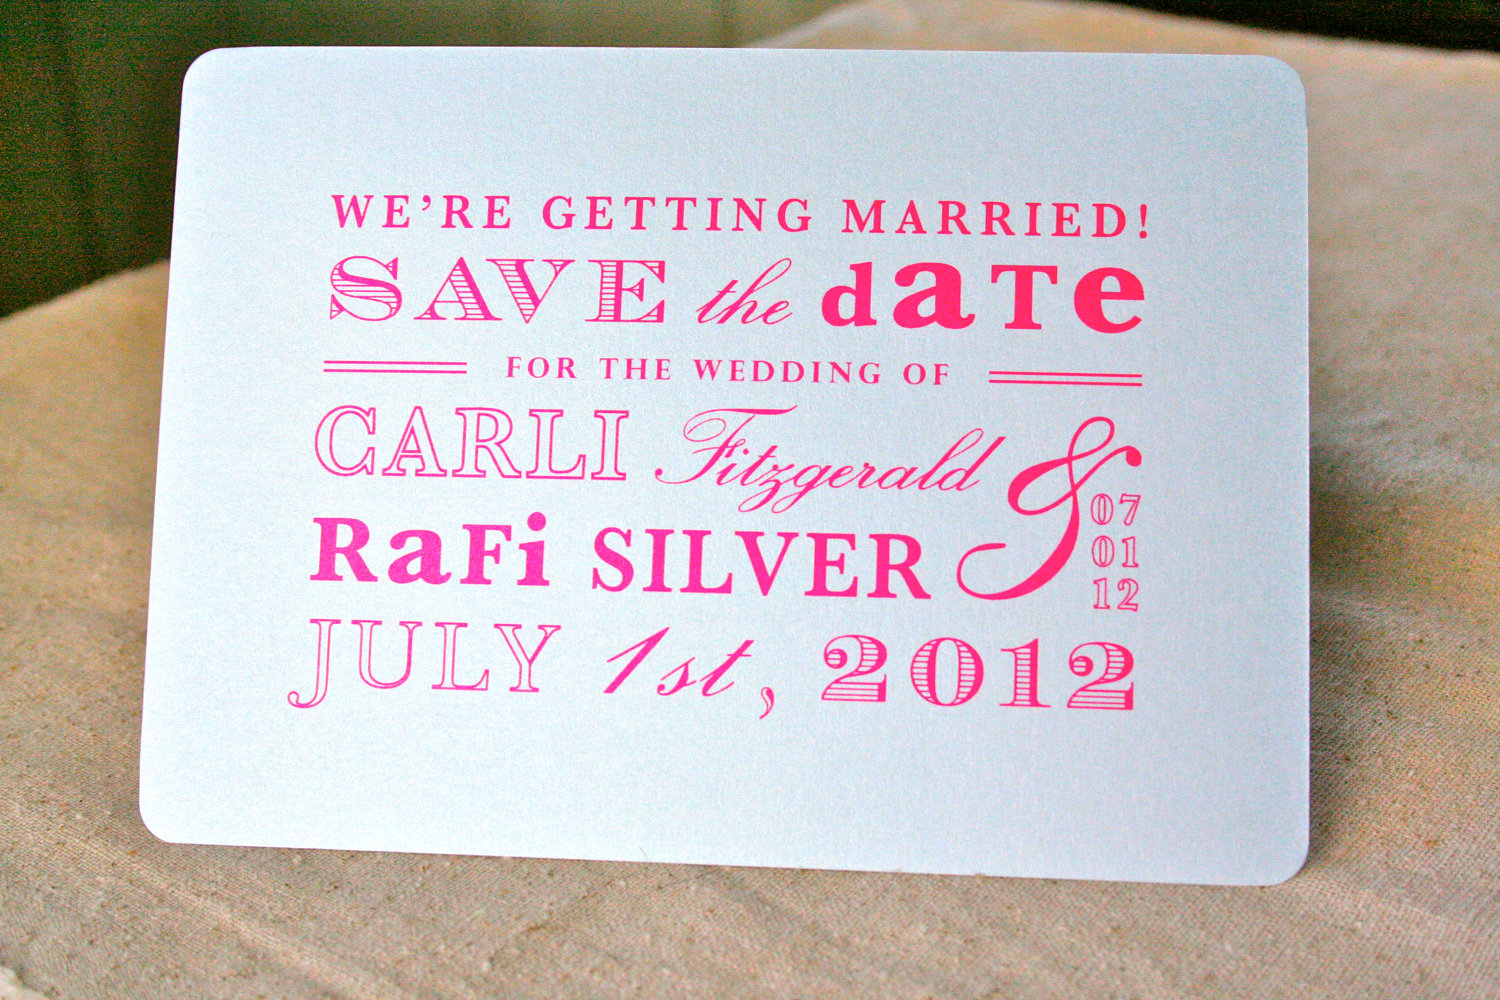 ... Ideas For Weddings save the date archives - bridal musings wedding